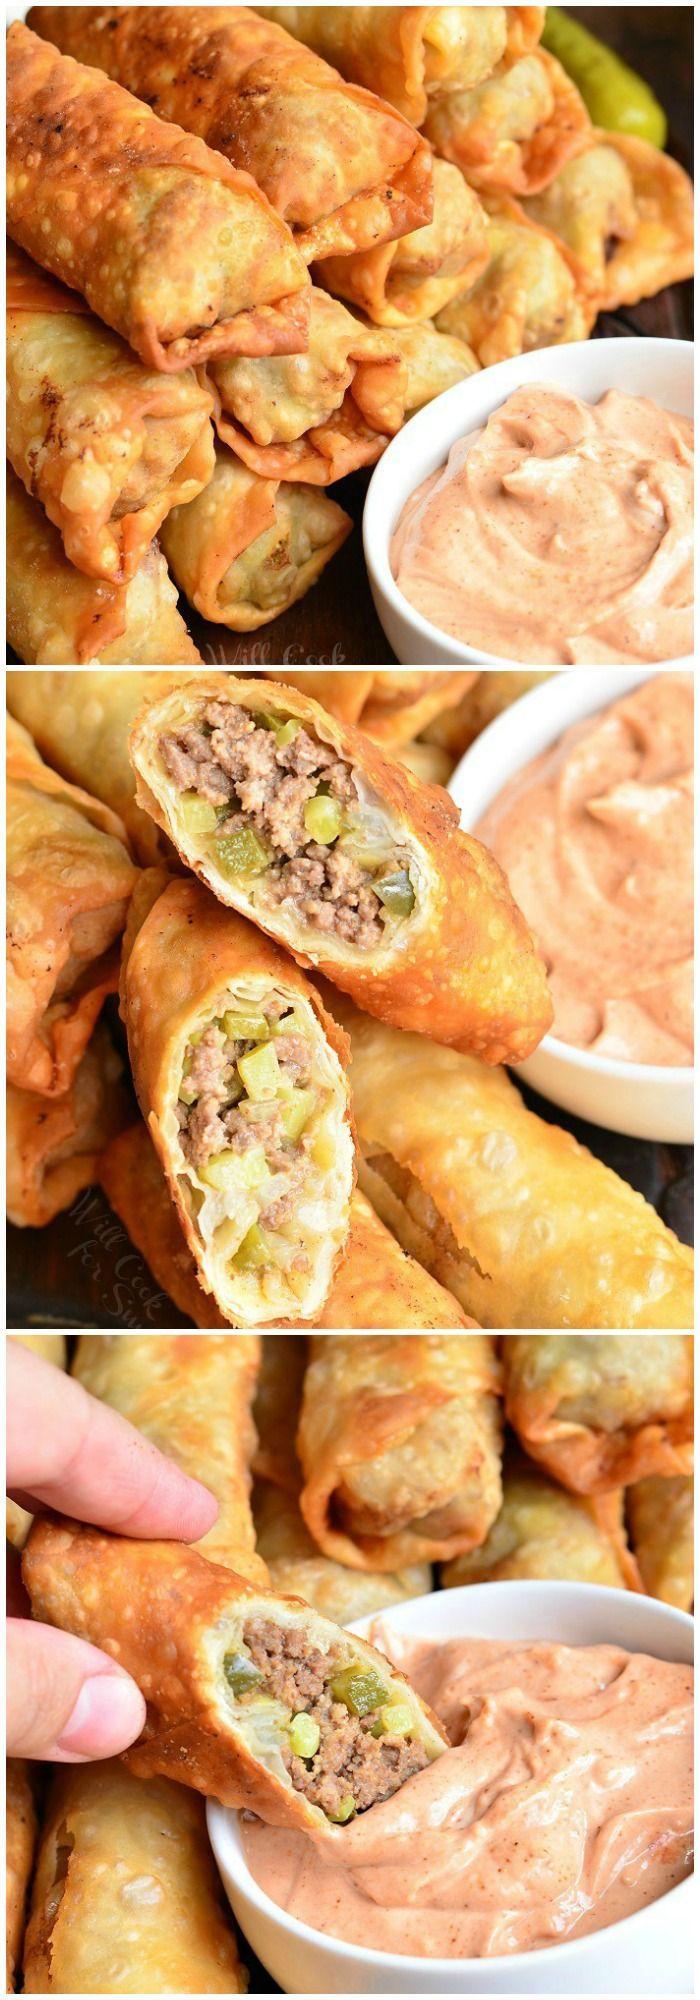 Cheeseburger Egg Rolls, stuffed with juicy ground beef, melted cheese, and pickles. from willcookforsmiles.com